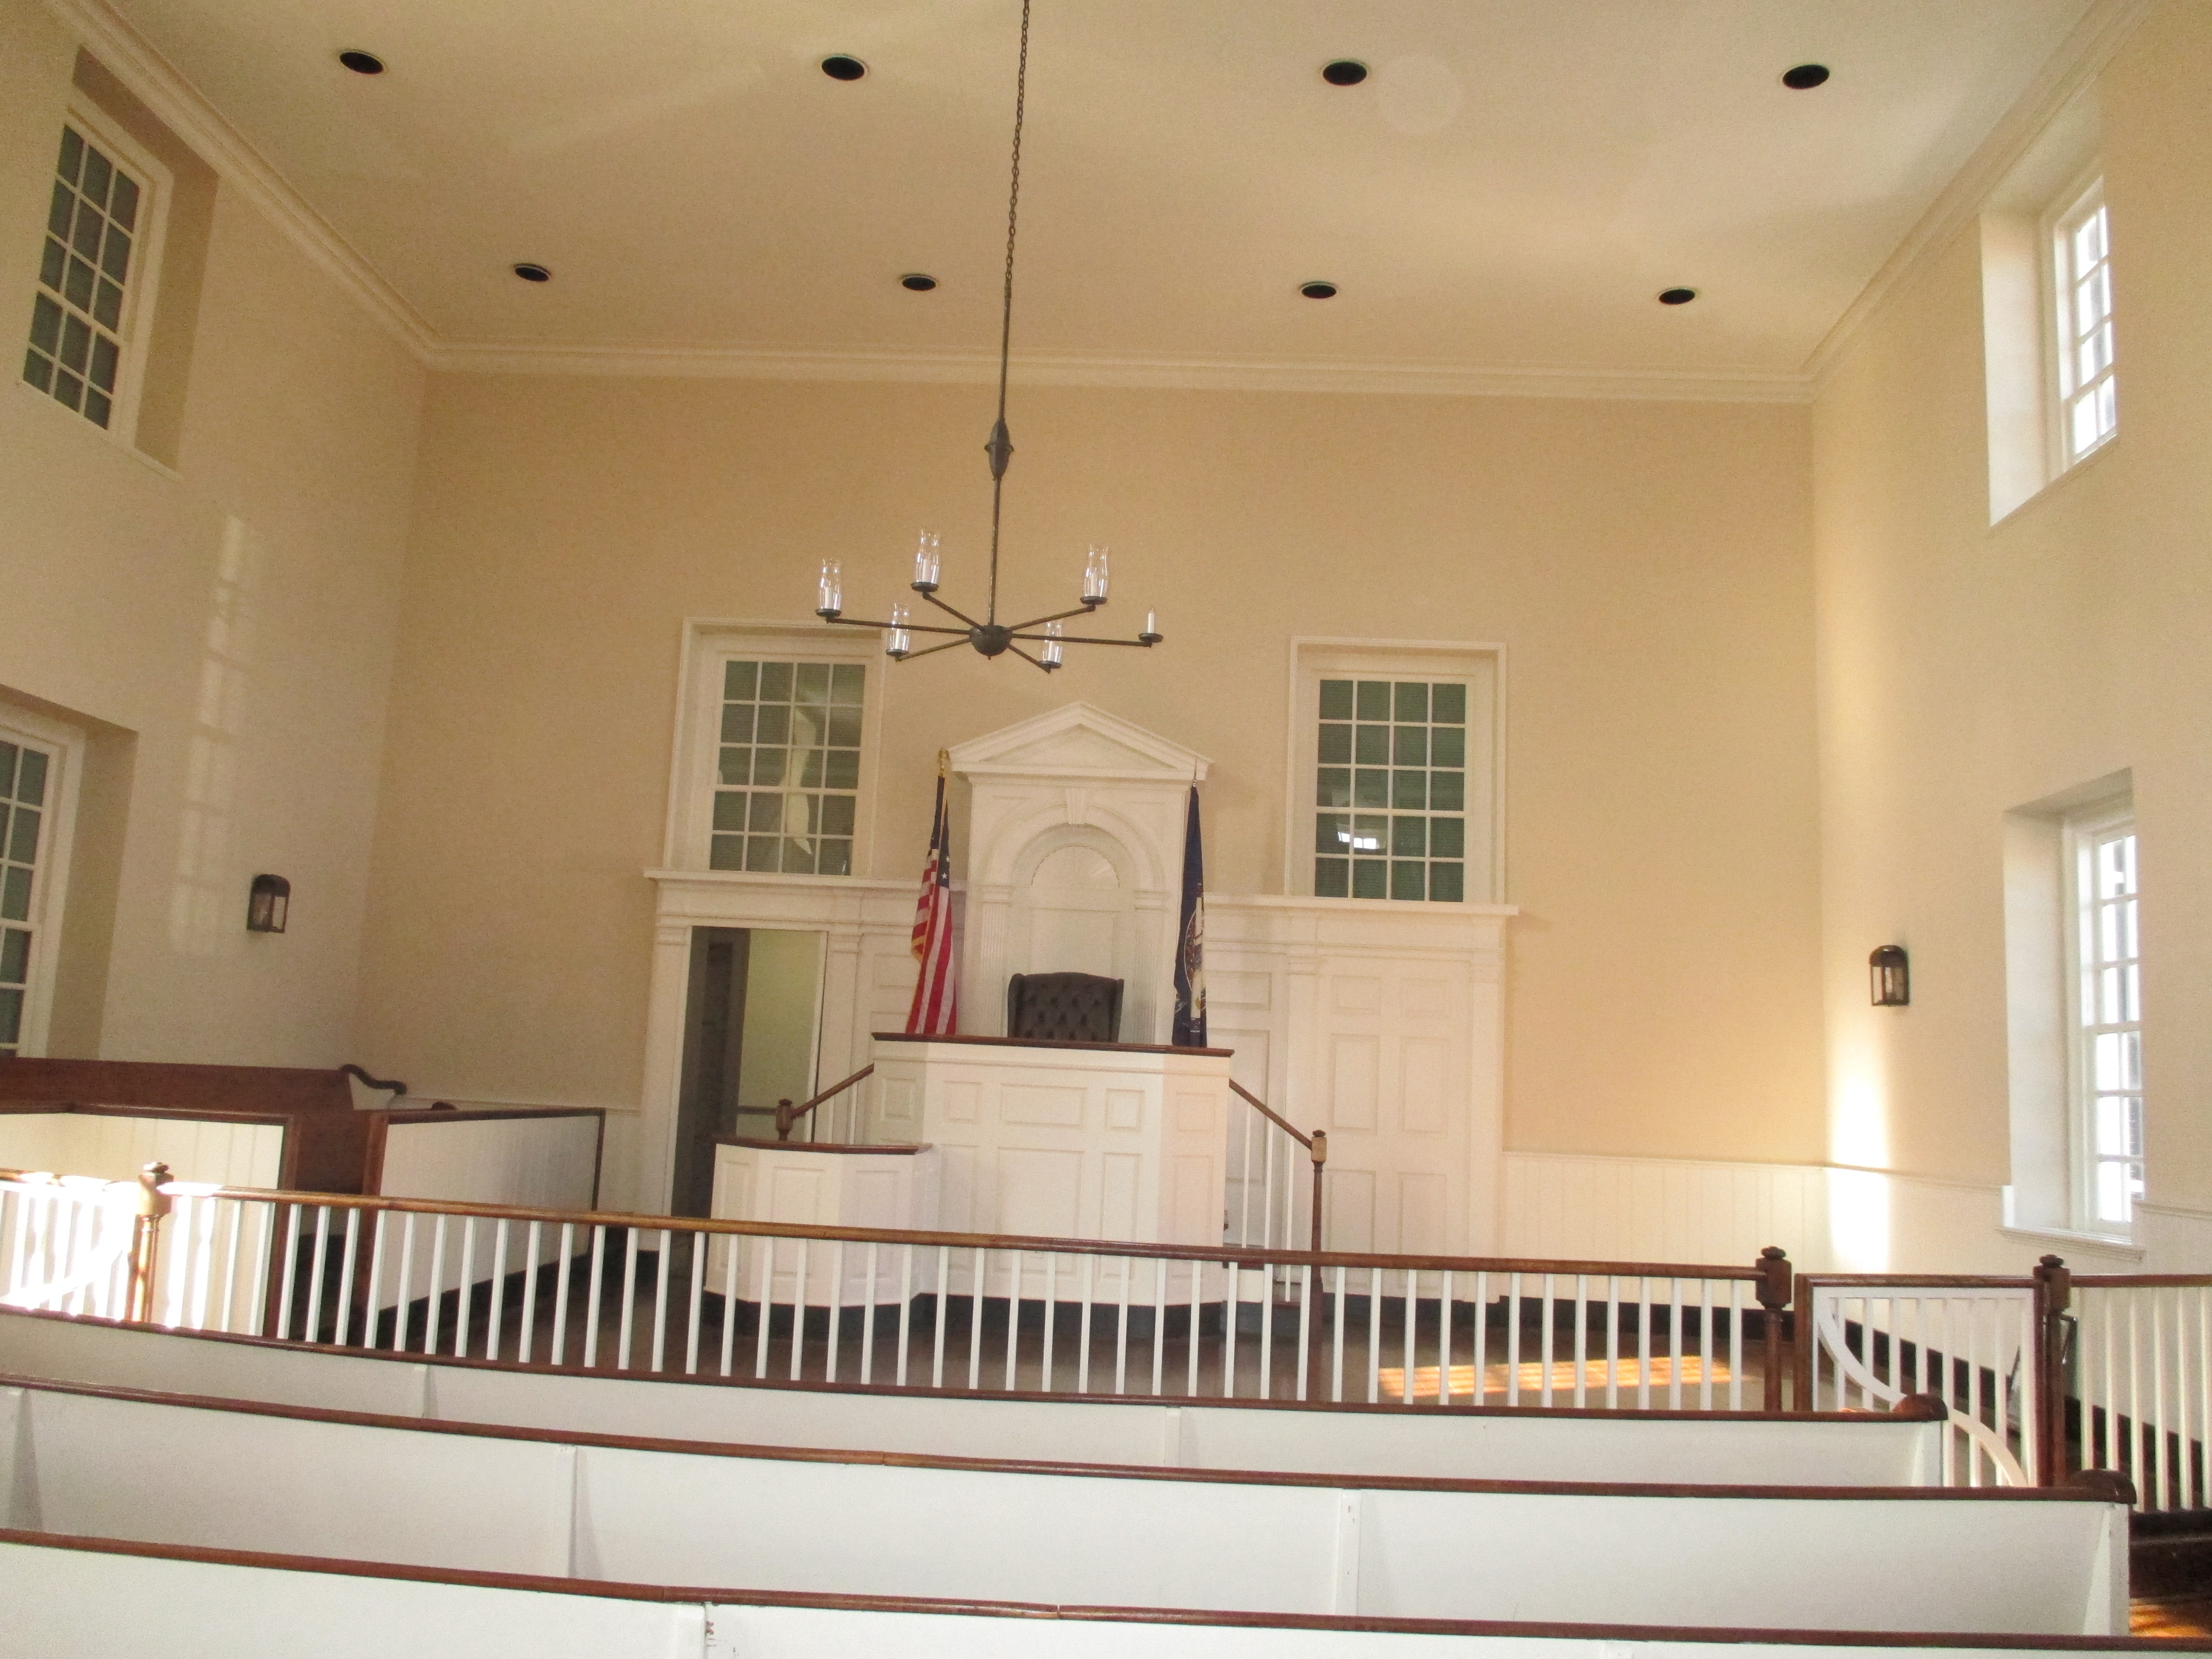 Inside the Historic Courthouse